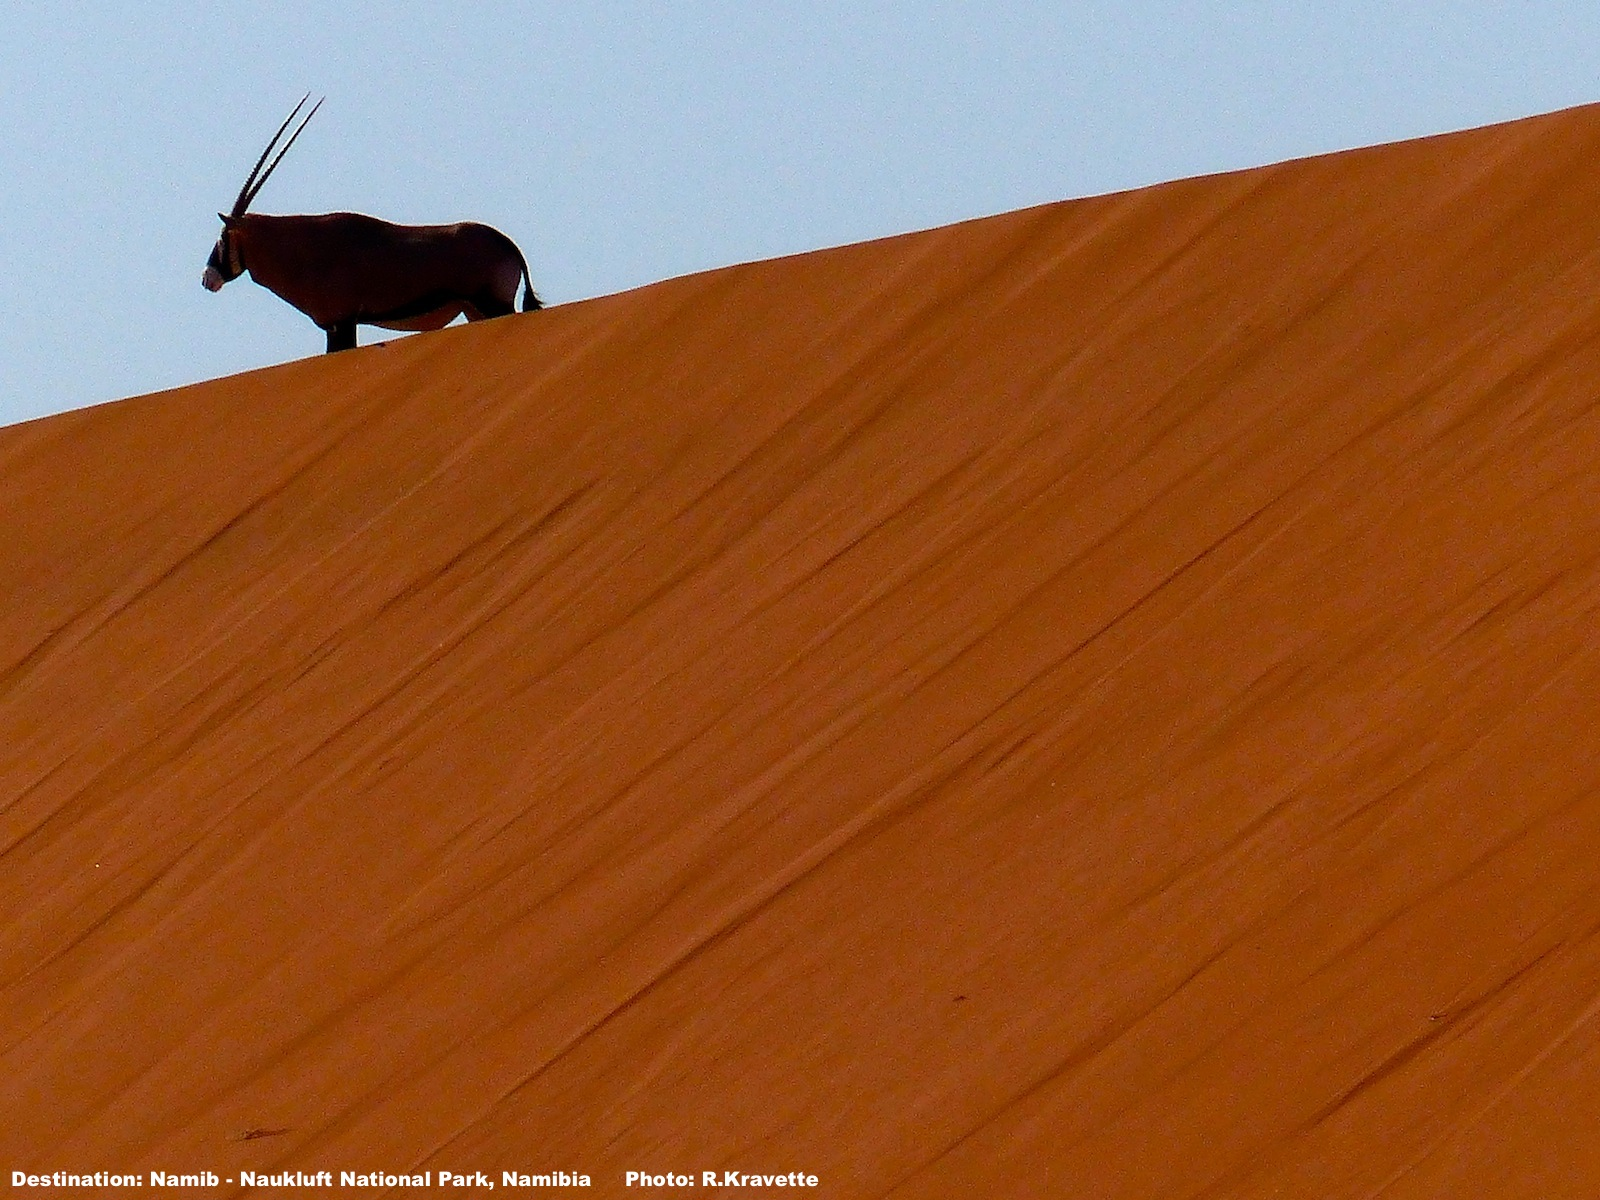 The Oryx appeared out of nowhere IMAGE: ©R.KRAVETTE